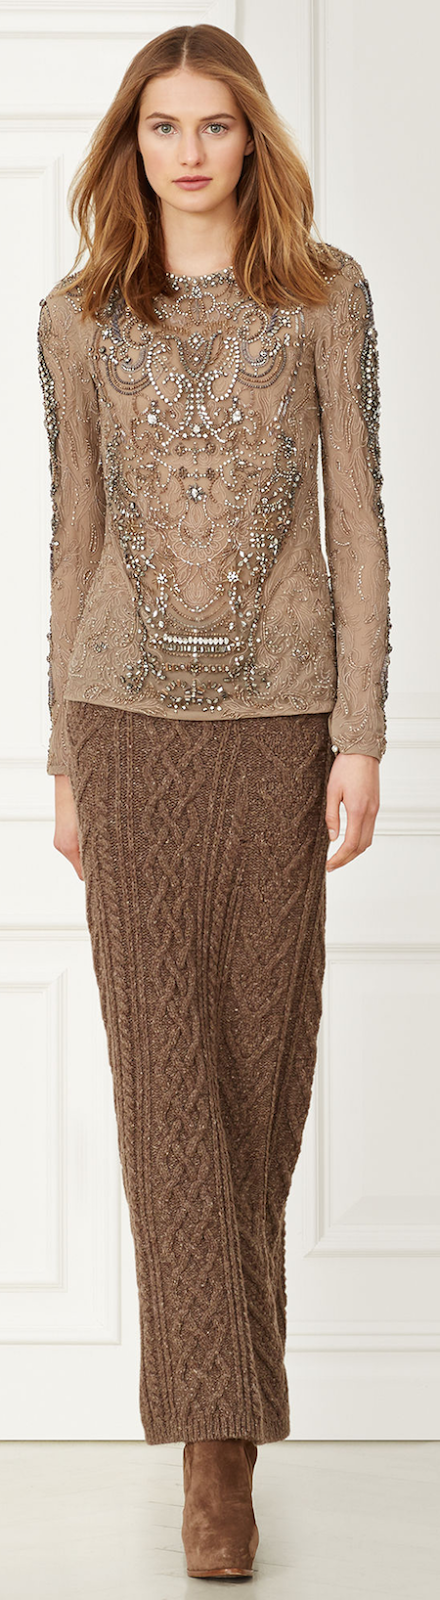 RALPH LAUREN CHARLENE BEADED TOP BRONZE